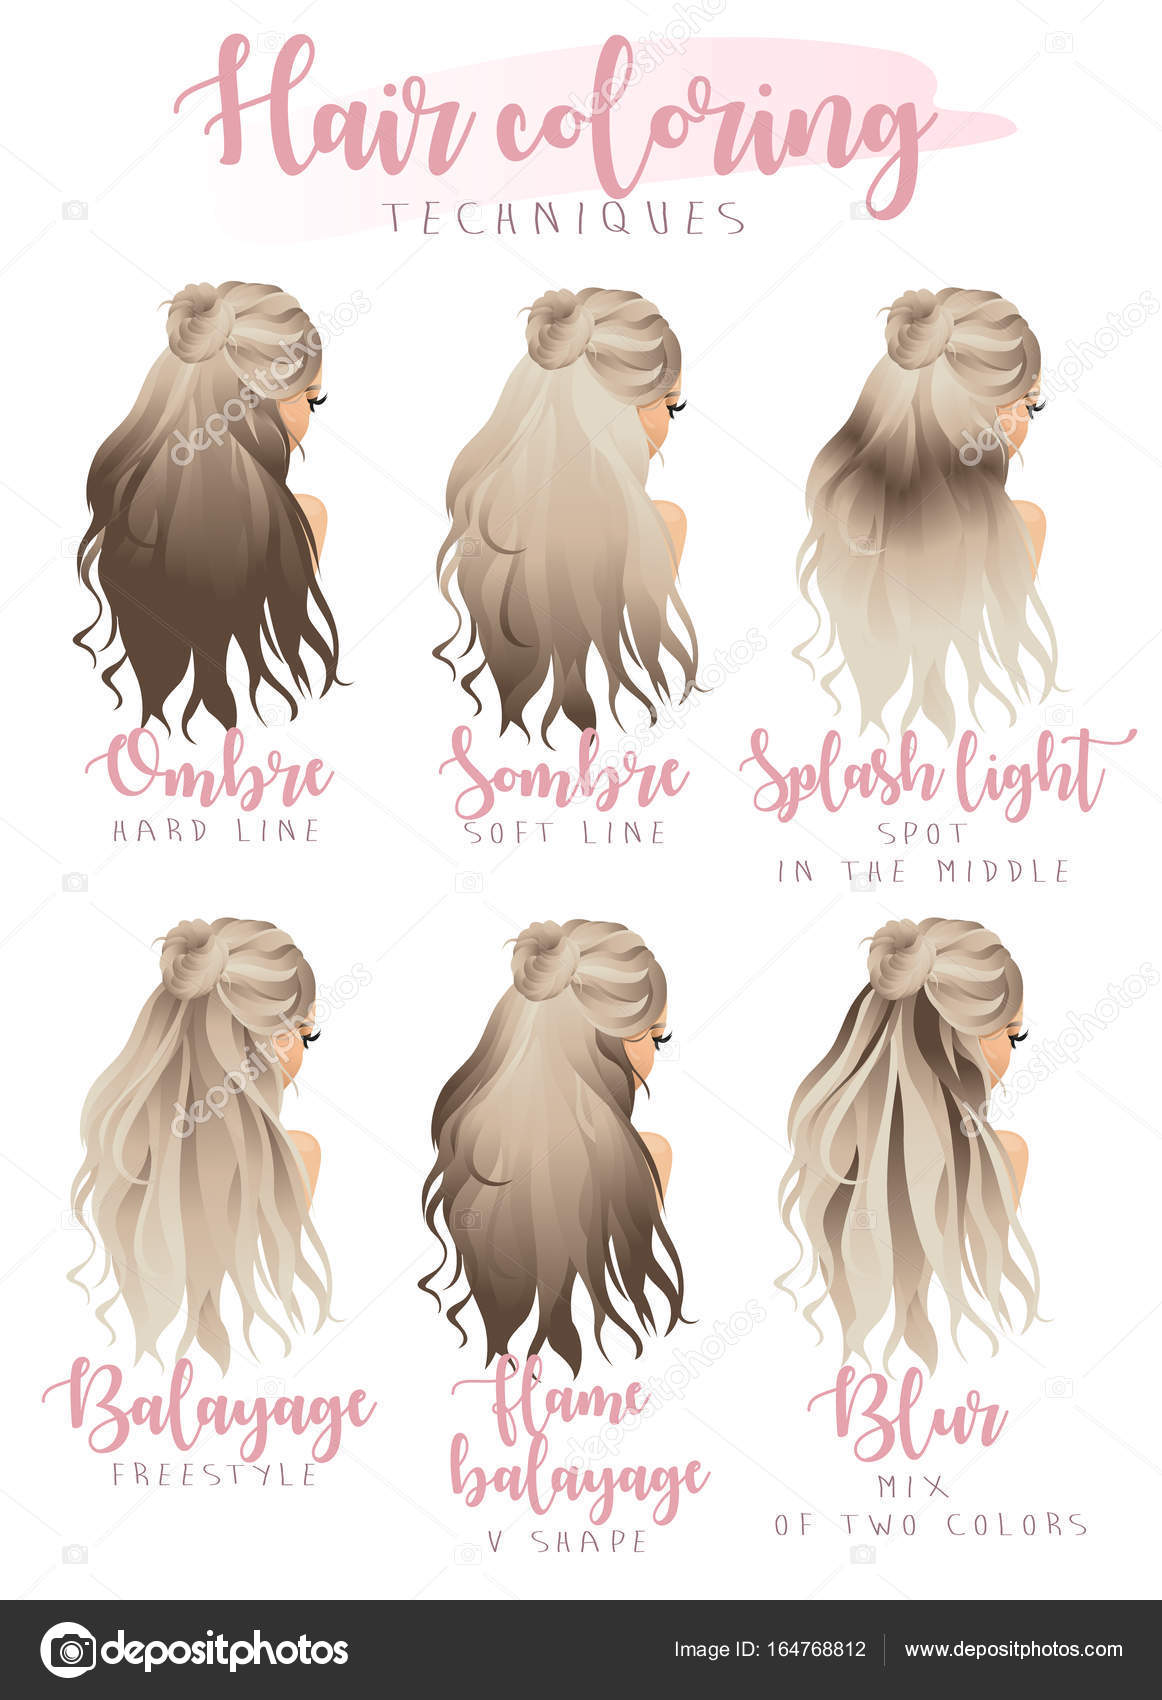 hair coloring techniques — Stock Vector © Meon #164768812